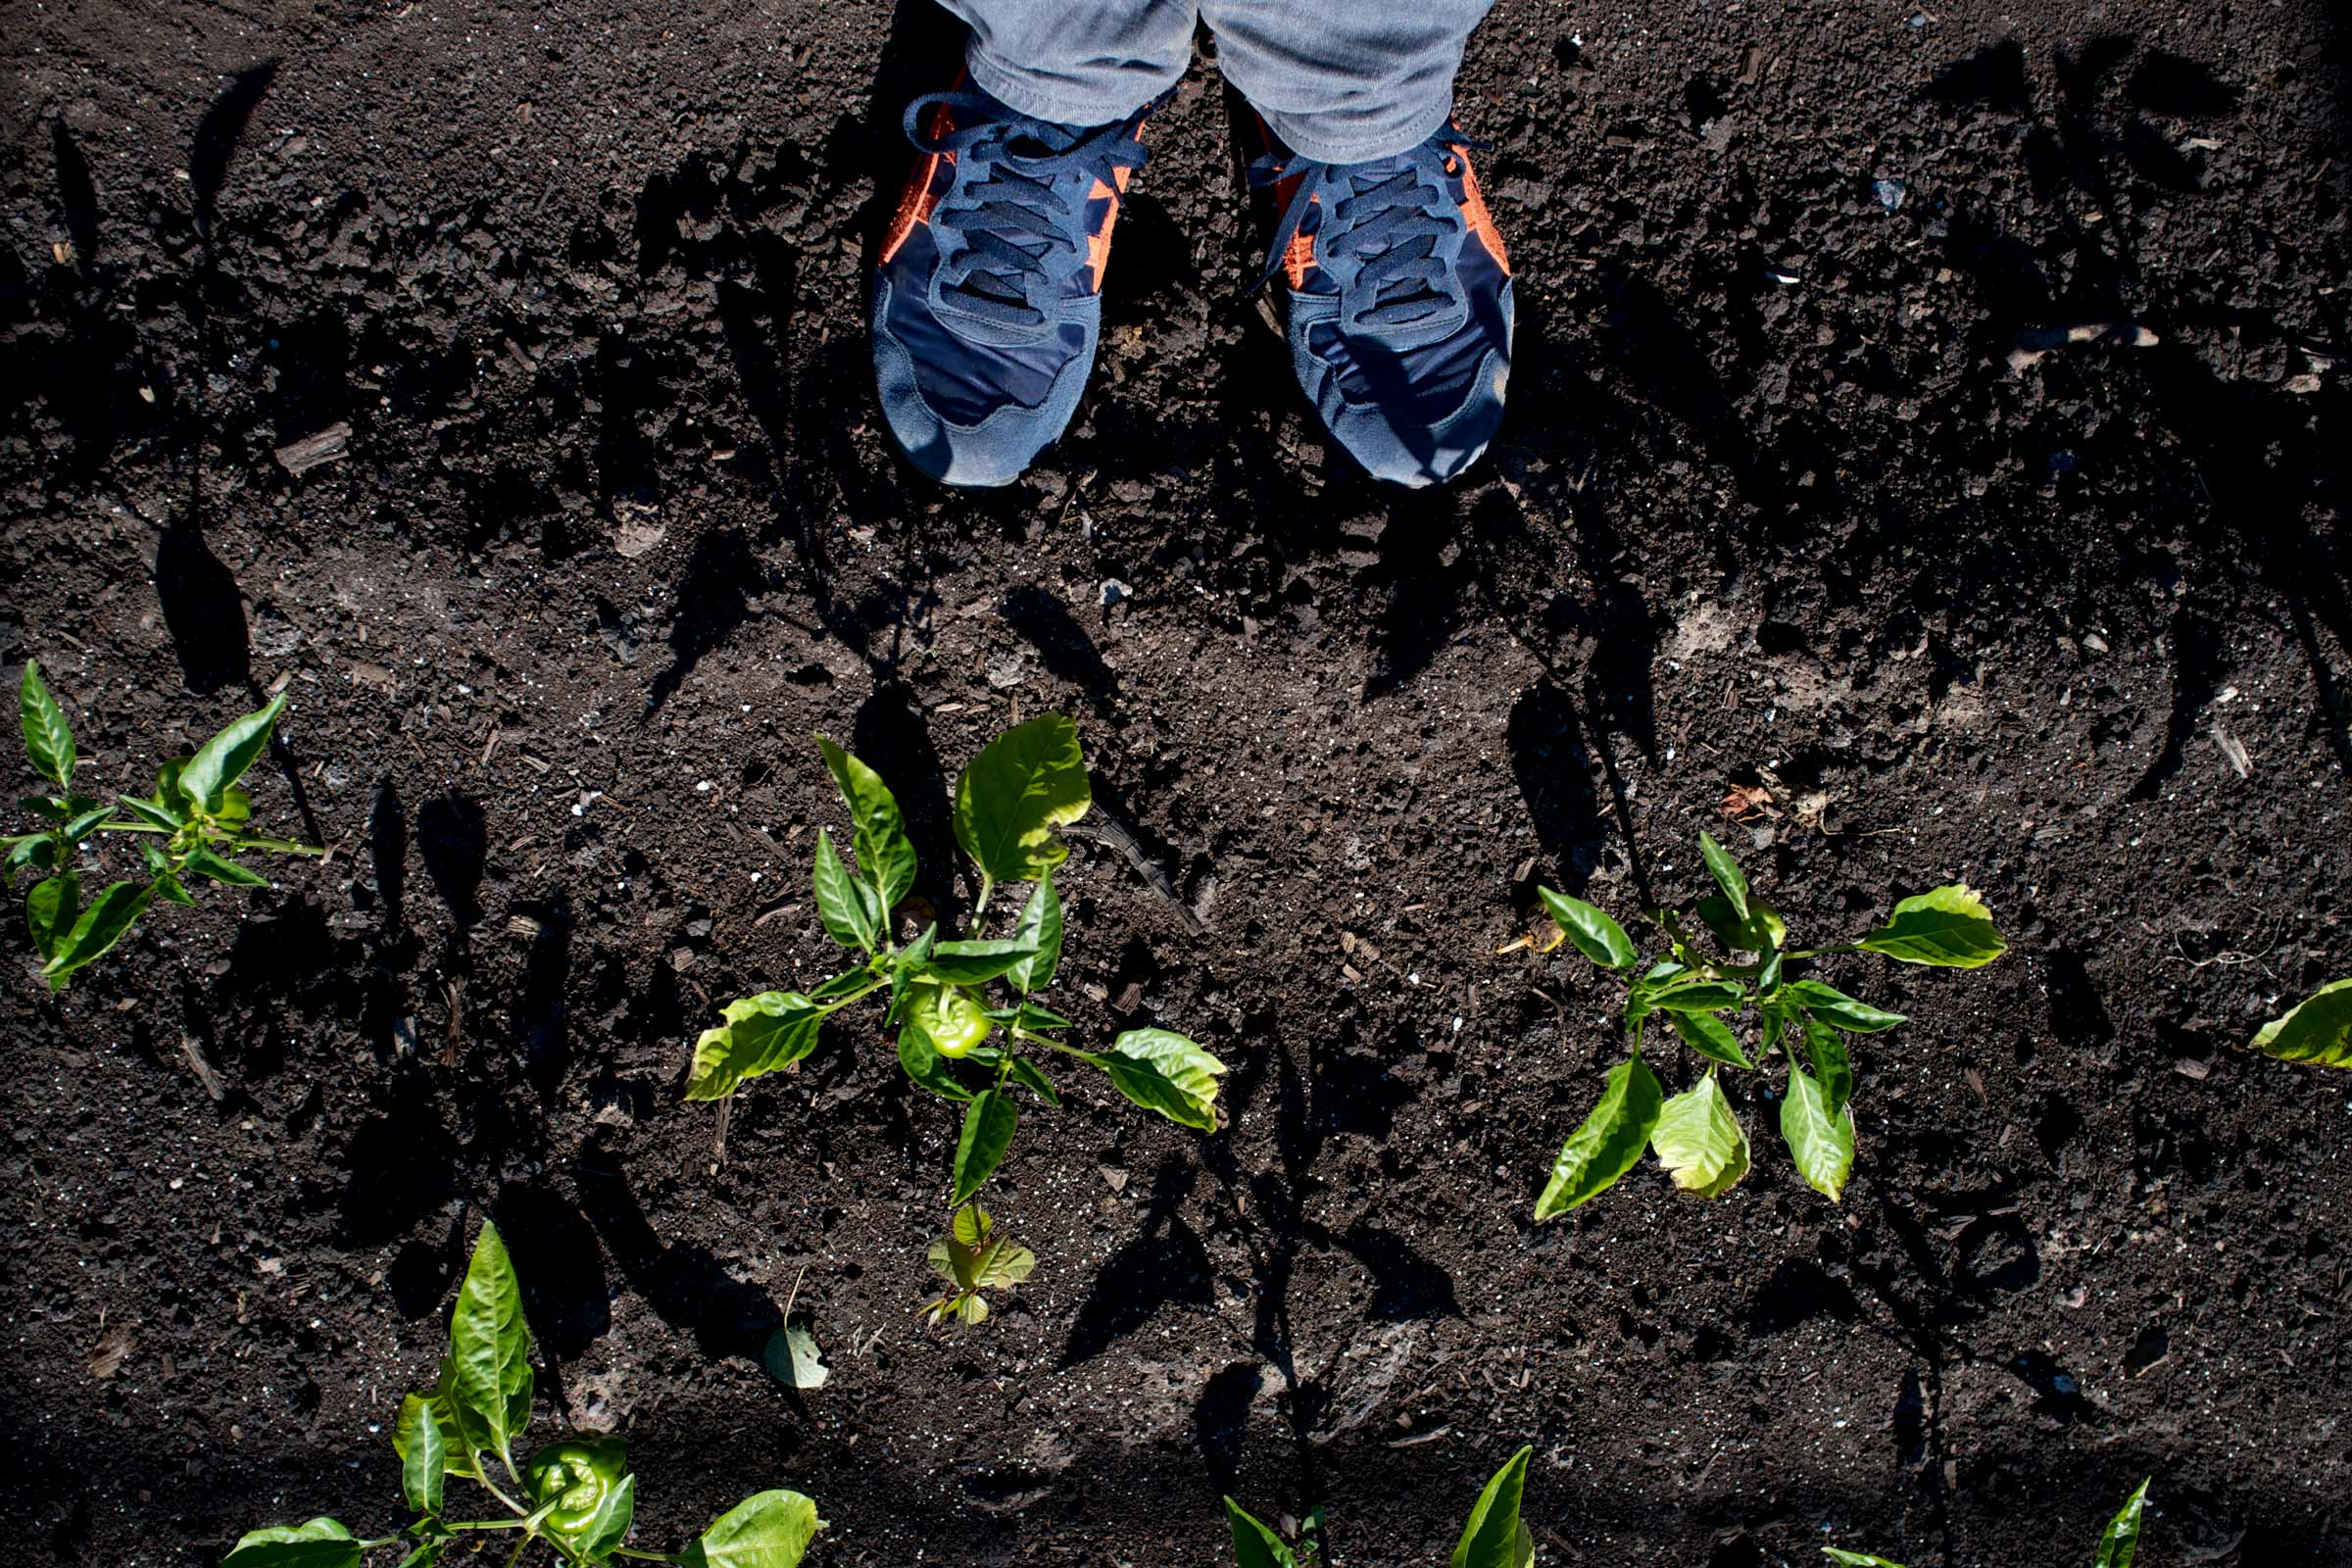 photograph looking down at feet in the dirt with peppers growing